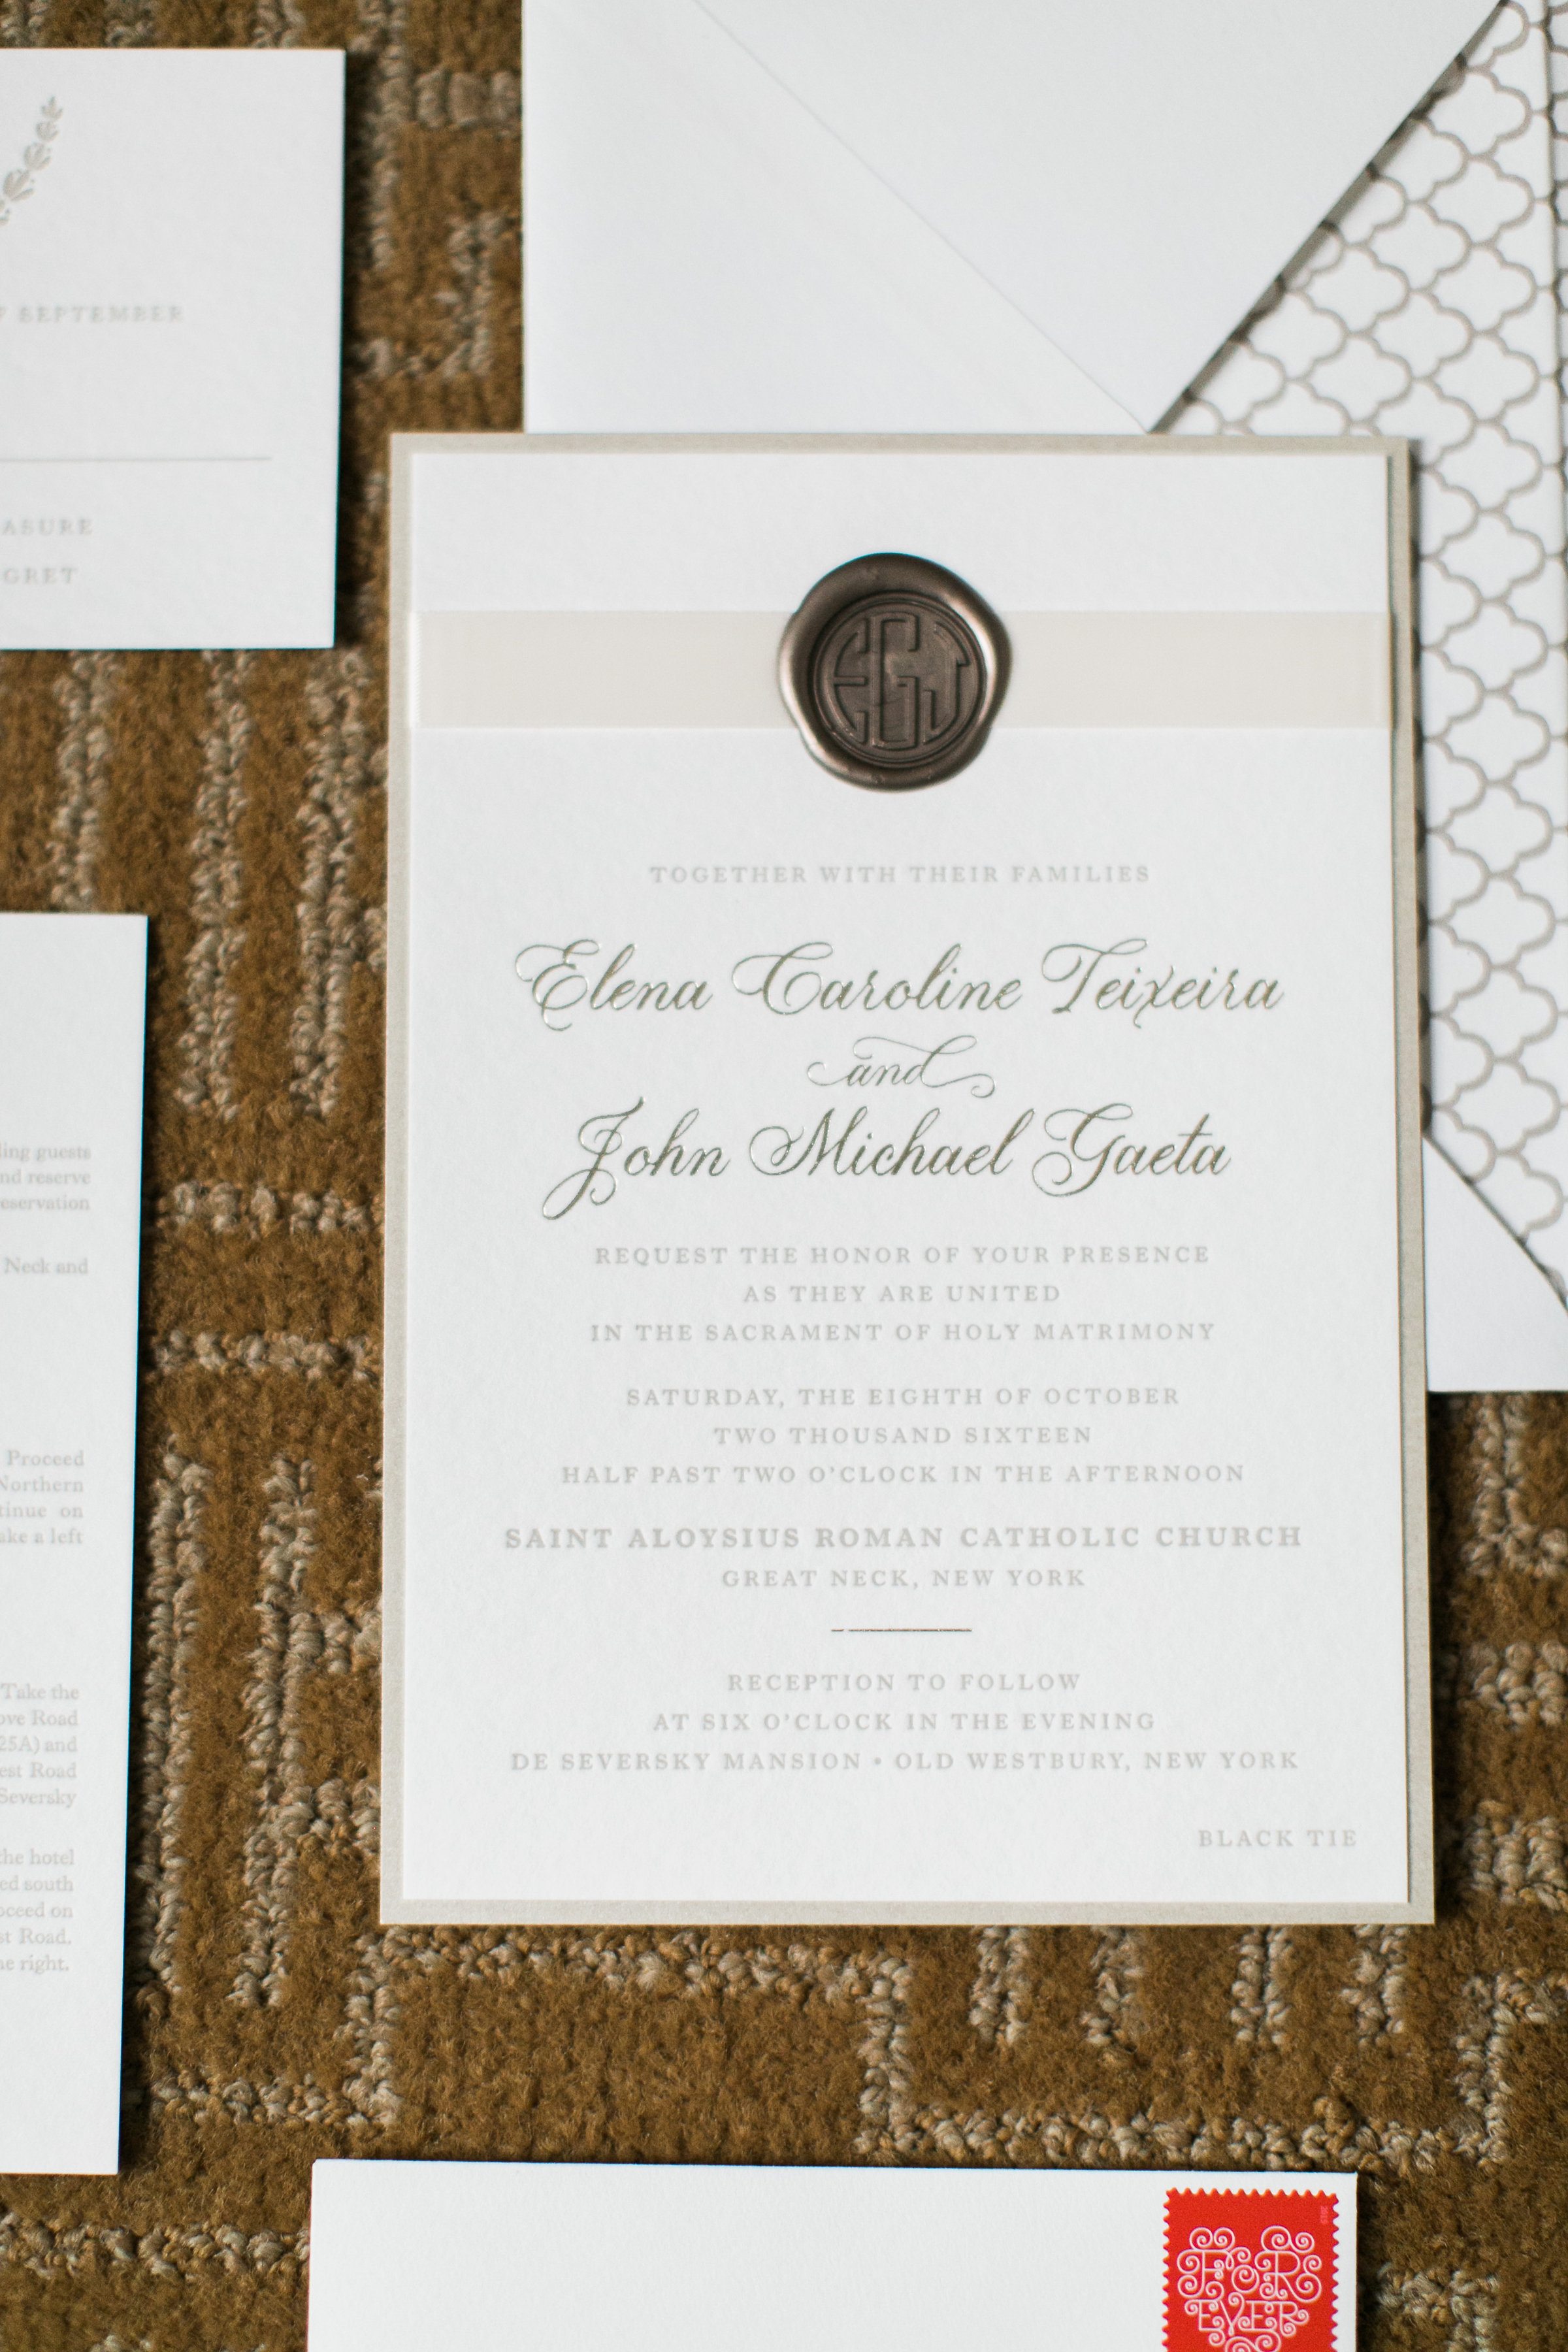 Elena + John Letterpress Wedding Invitation with Ribbon and Wax Seal, Foil details, traditional design in taupe and gold color palette